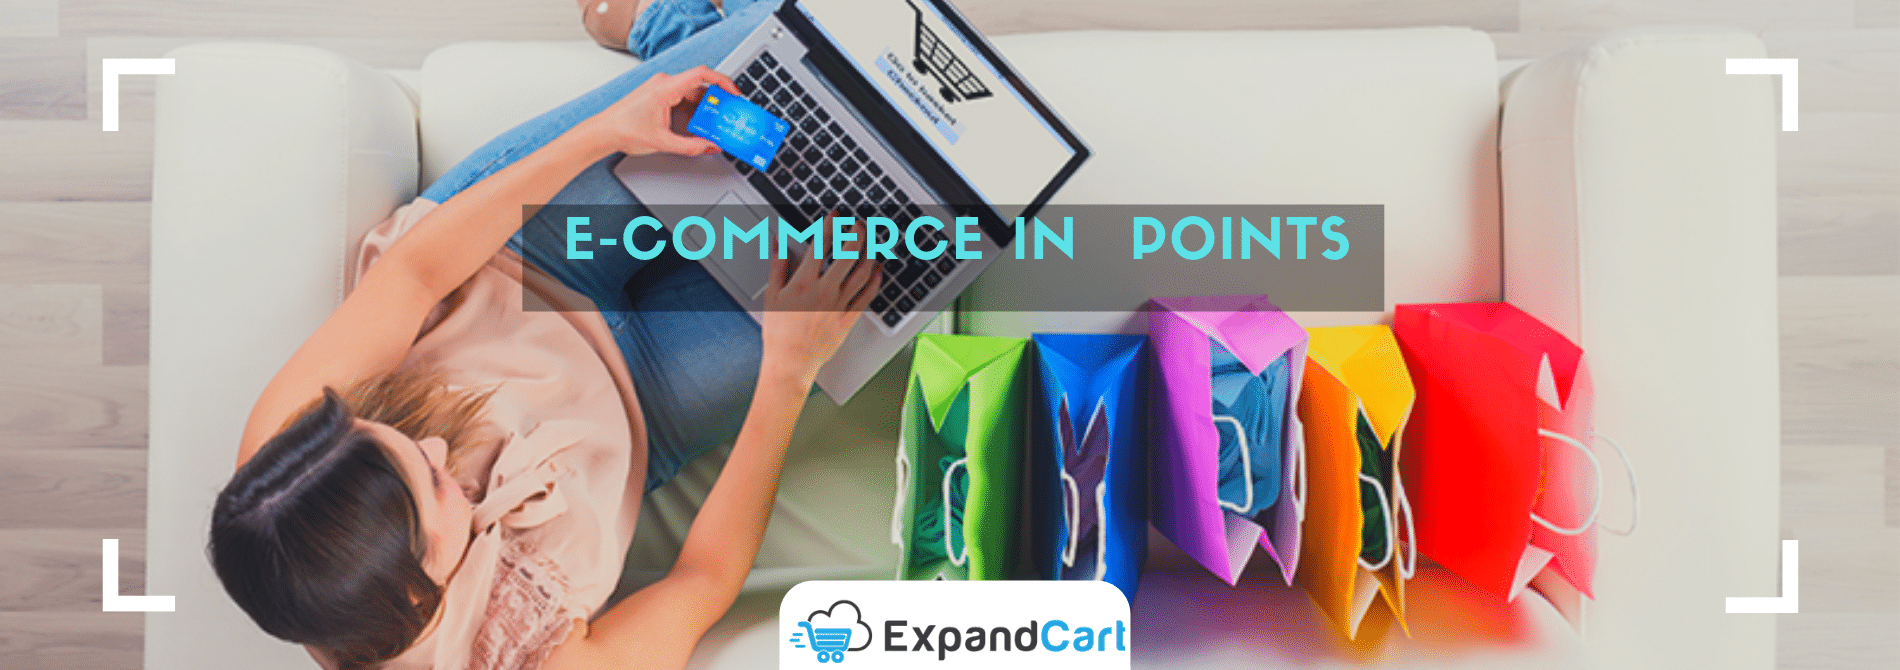 E-commerce in Simple and Comprehensive Points